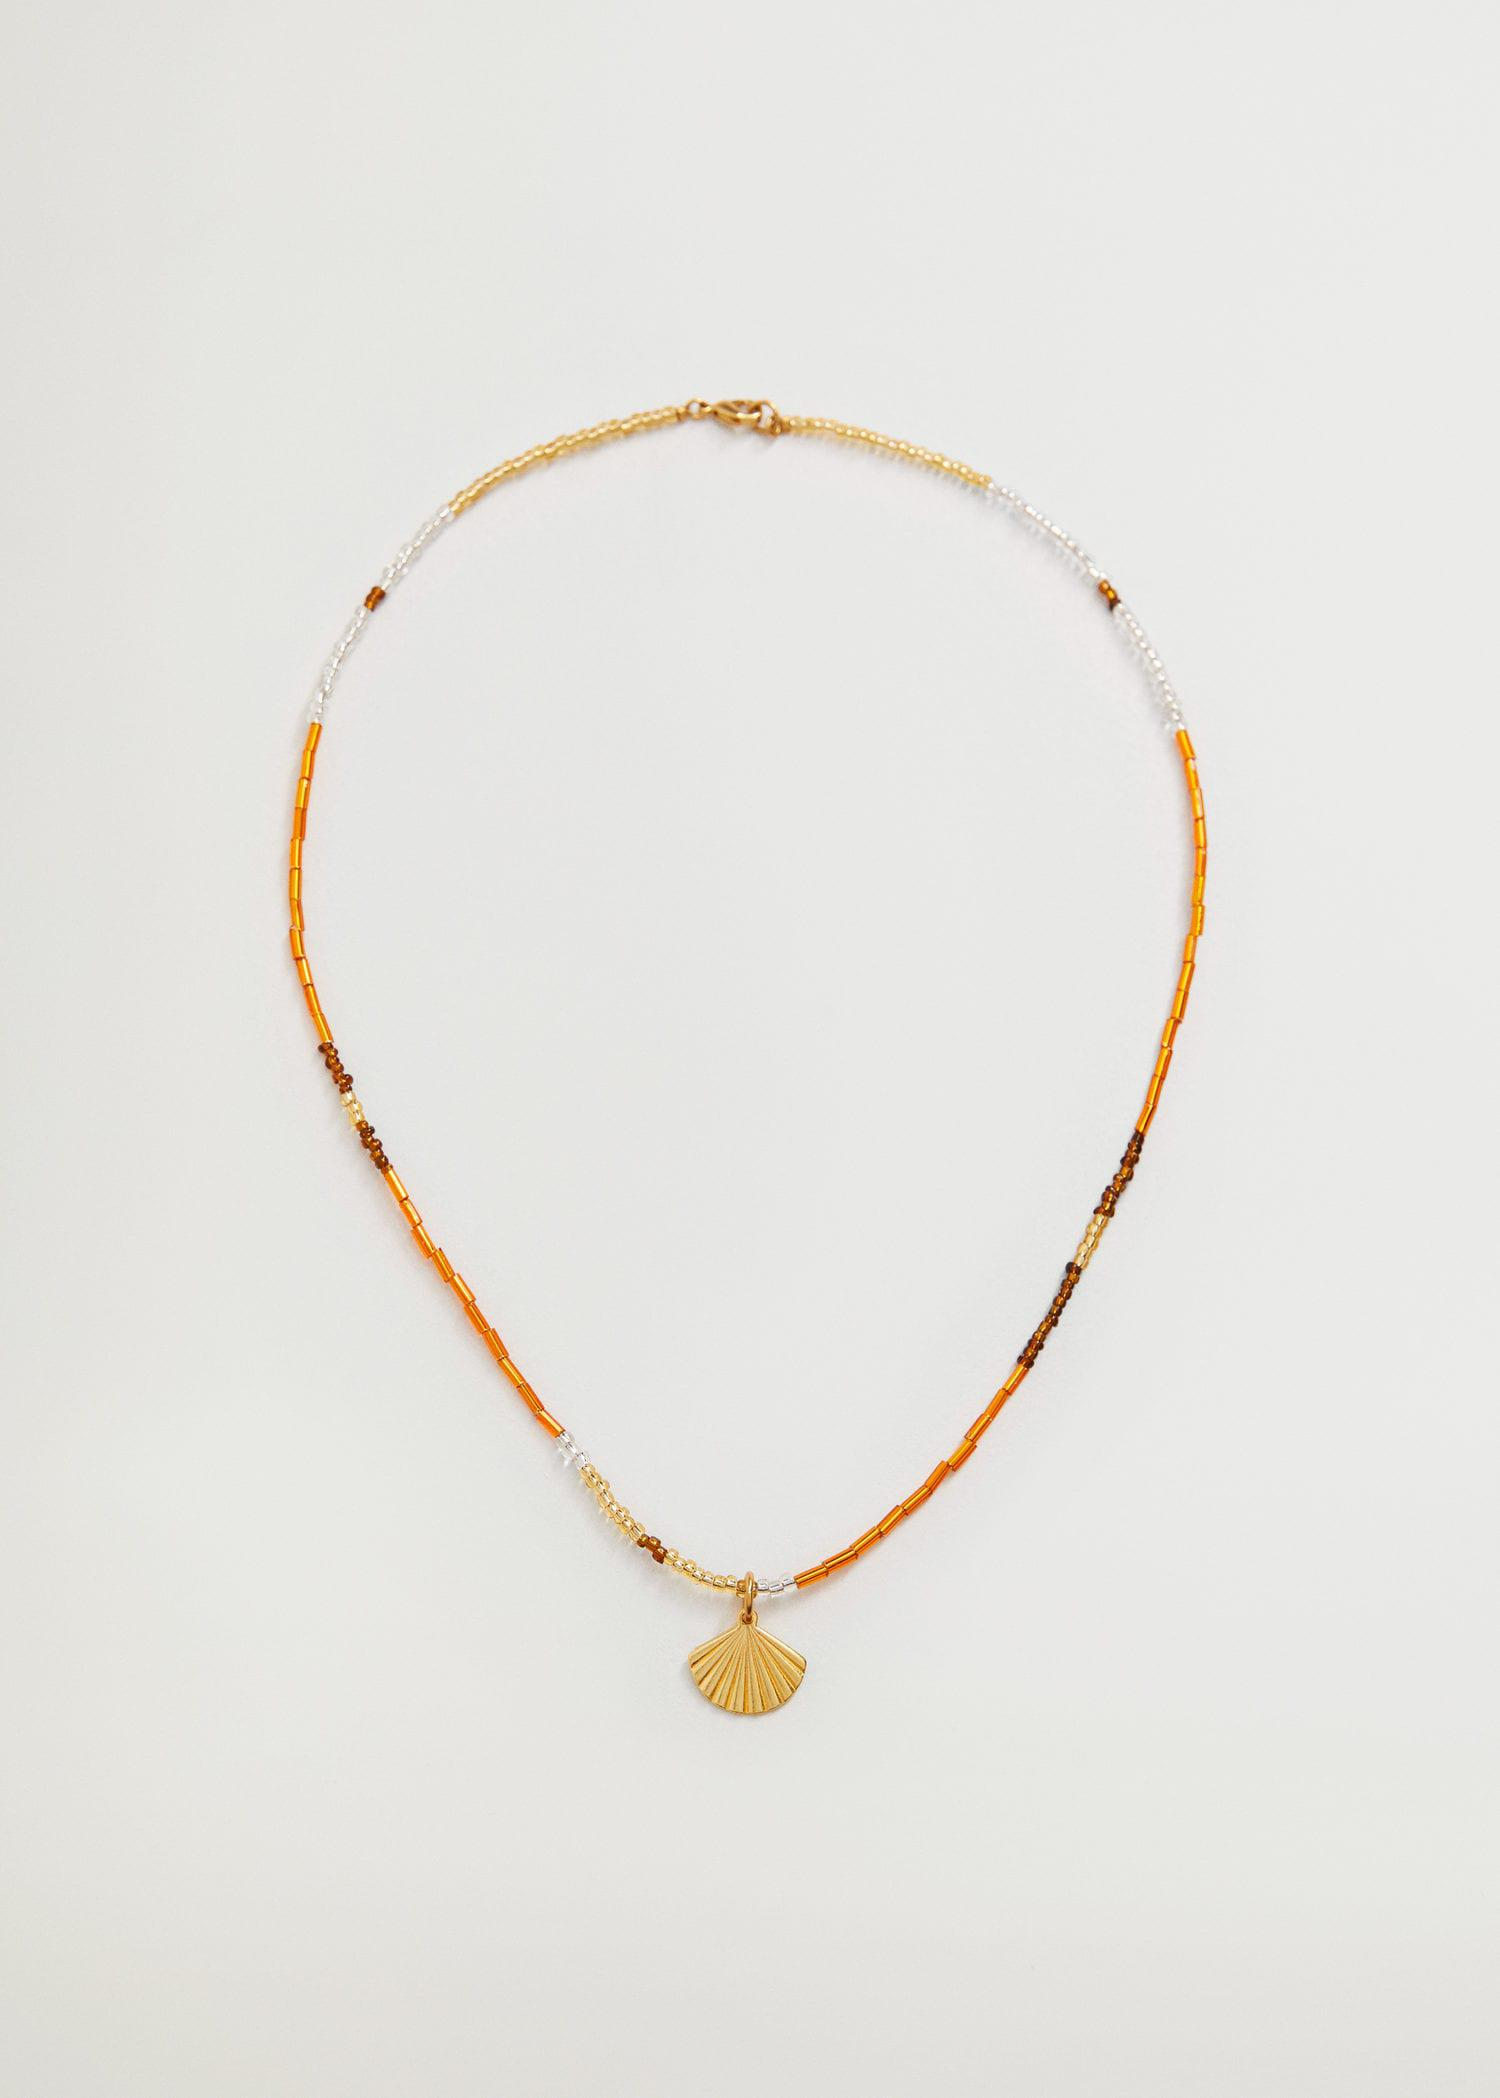 Beads pendant necklace